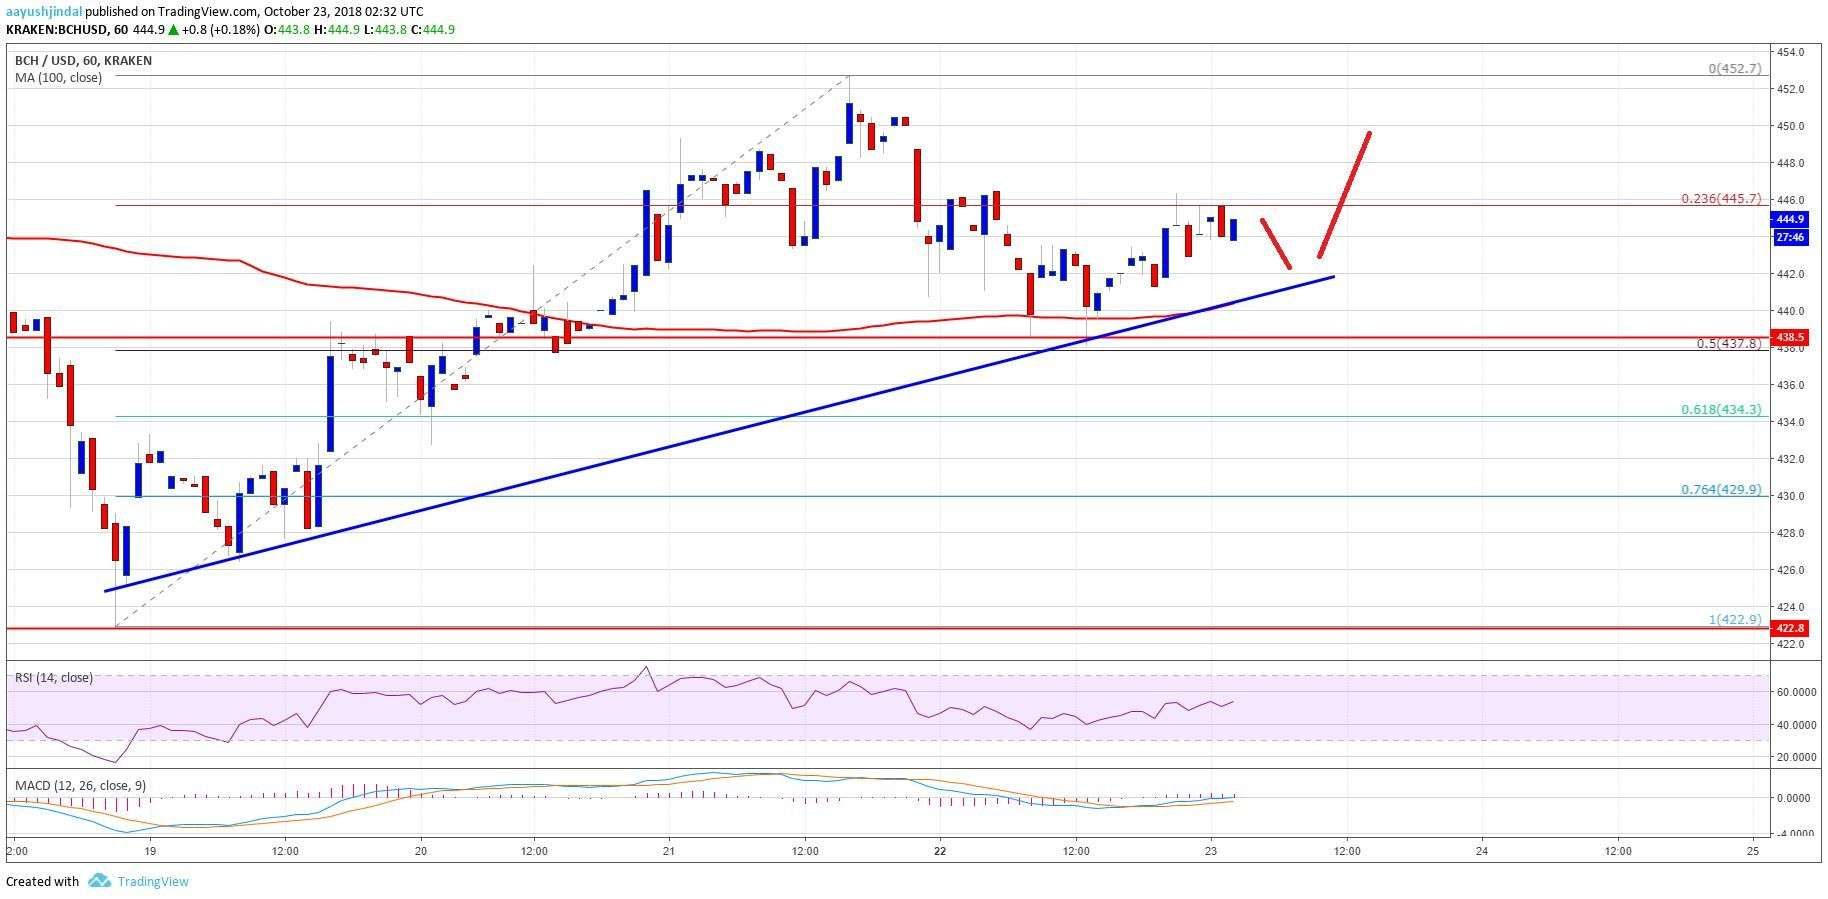 newsBTC: Bitcoin Cash Price Analysis: BCH/USD Holding Key Support Near $435